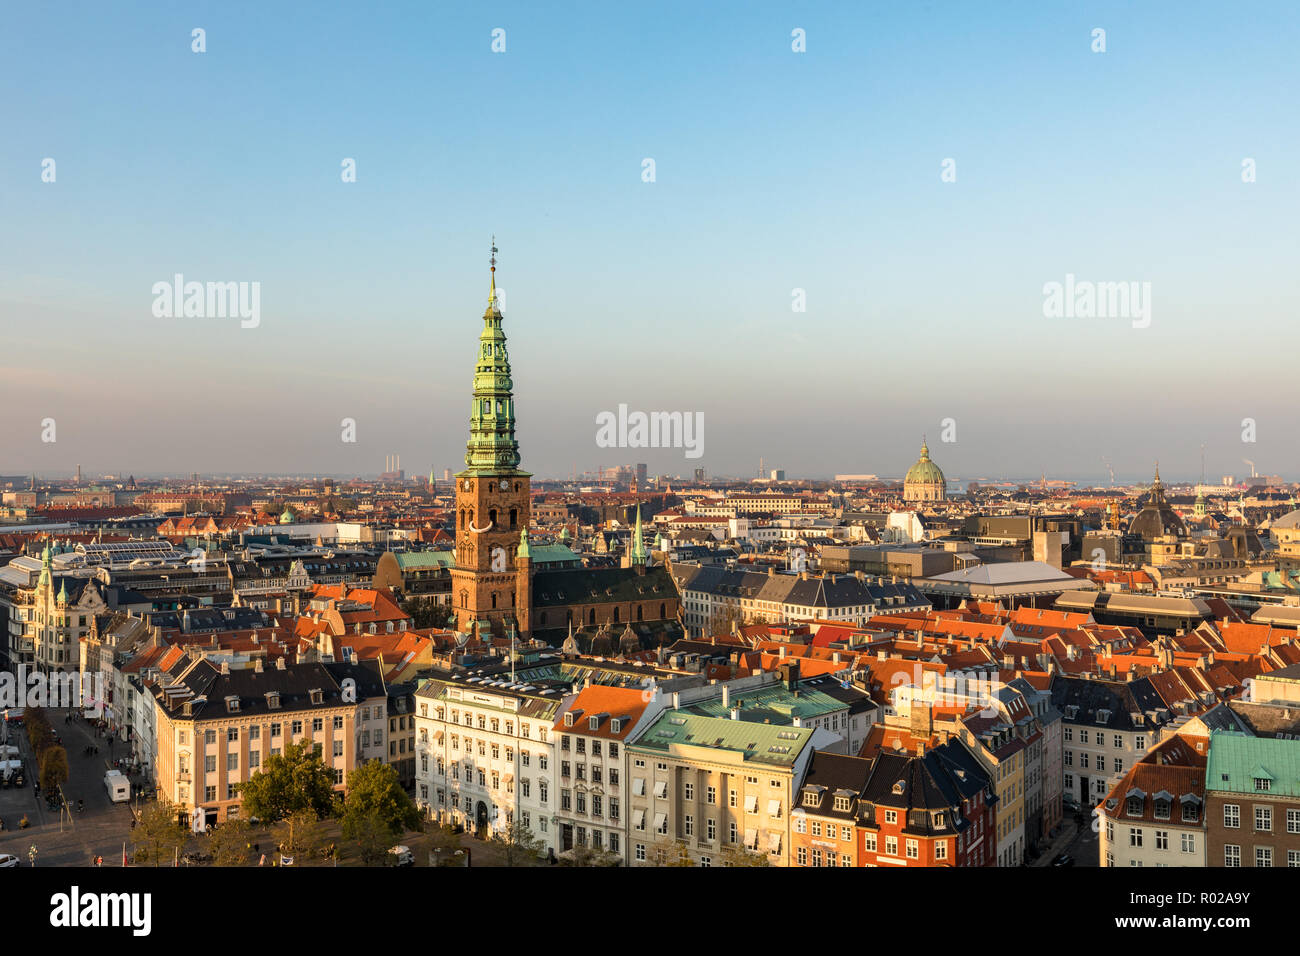 Copenhagen skyline in evening light. Copenhagen old town and copper spiel of Nikolaj Church. City streets and danish house roofs. High angle view from - Stock Image